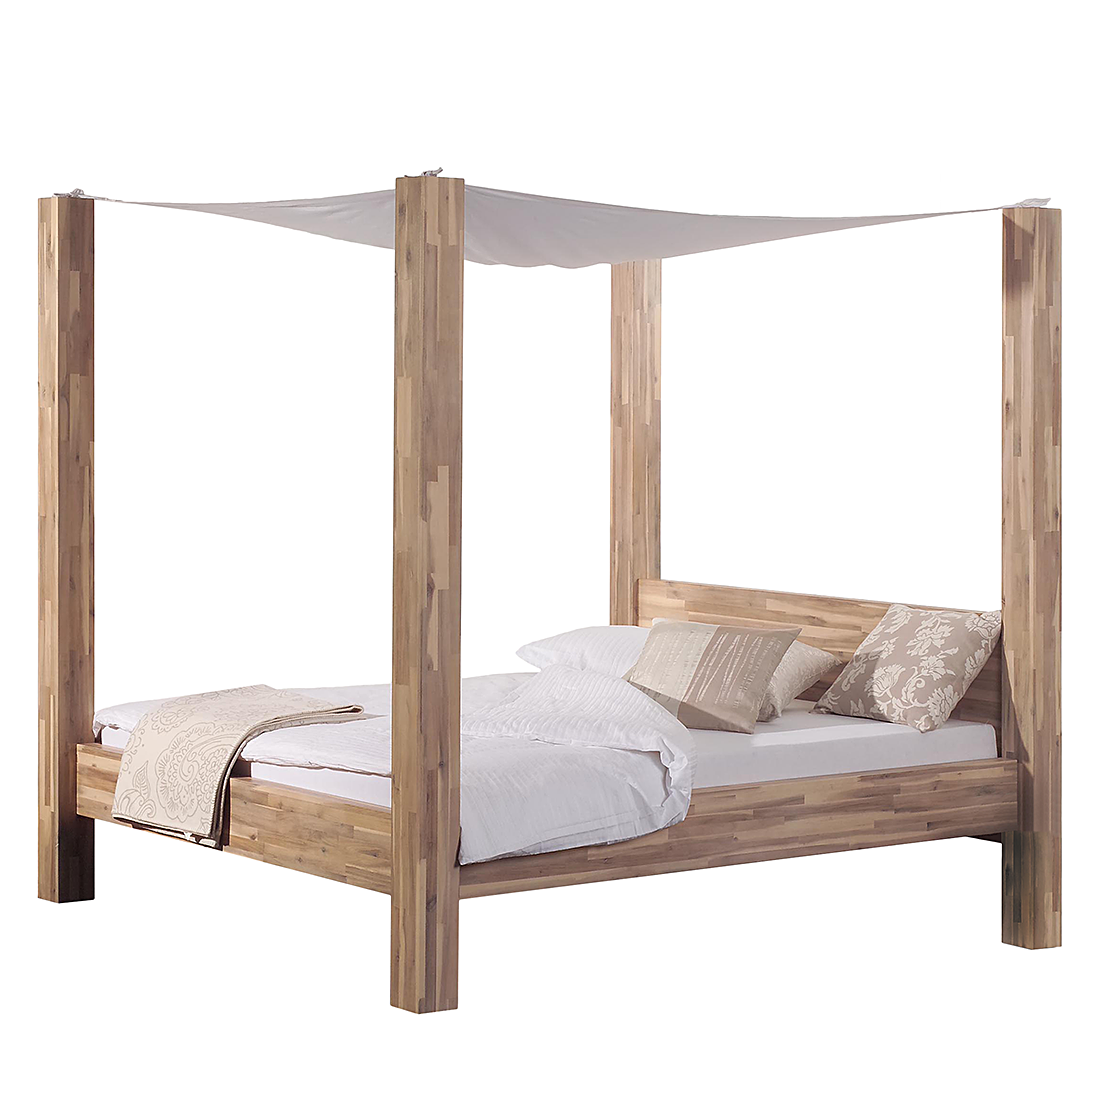 himmelbett holz dunkel inspiration f r die gestaltung der besten r ume. Black Bedroom Furniture Sets. Home Design Ideas